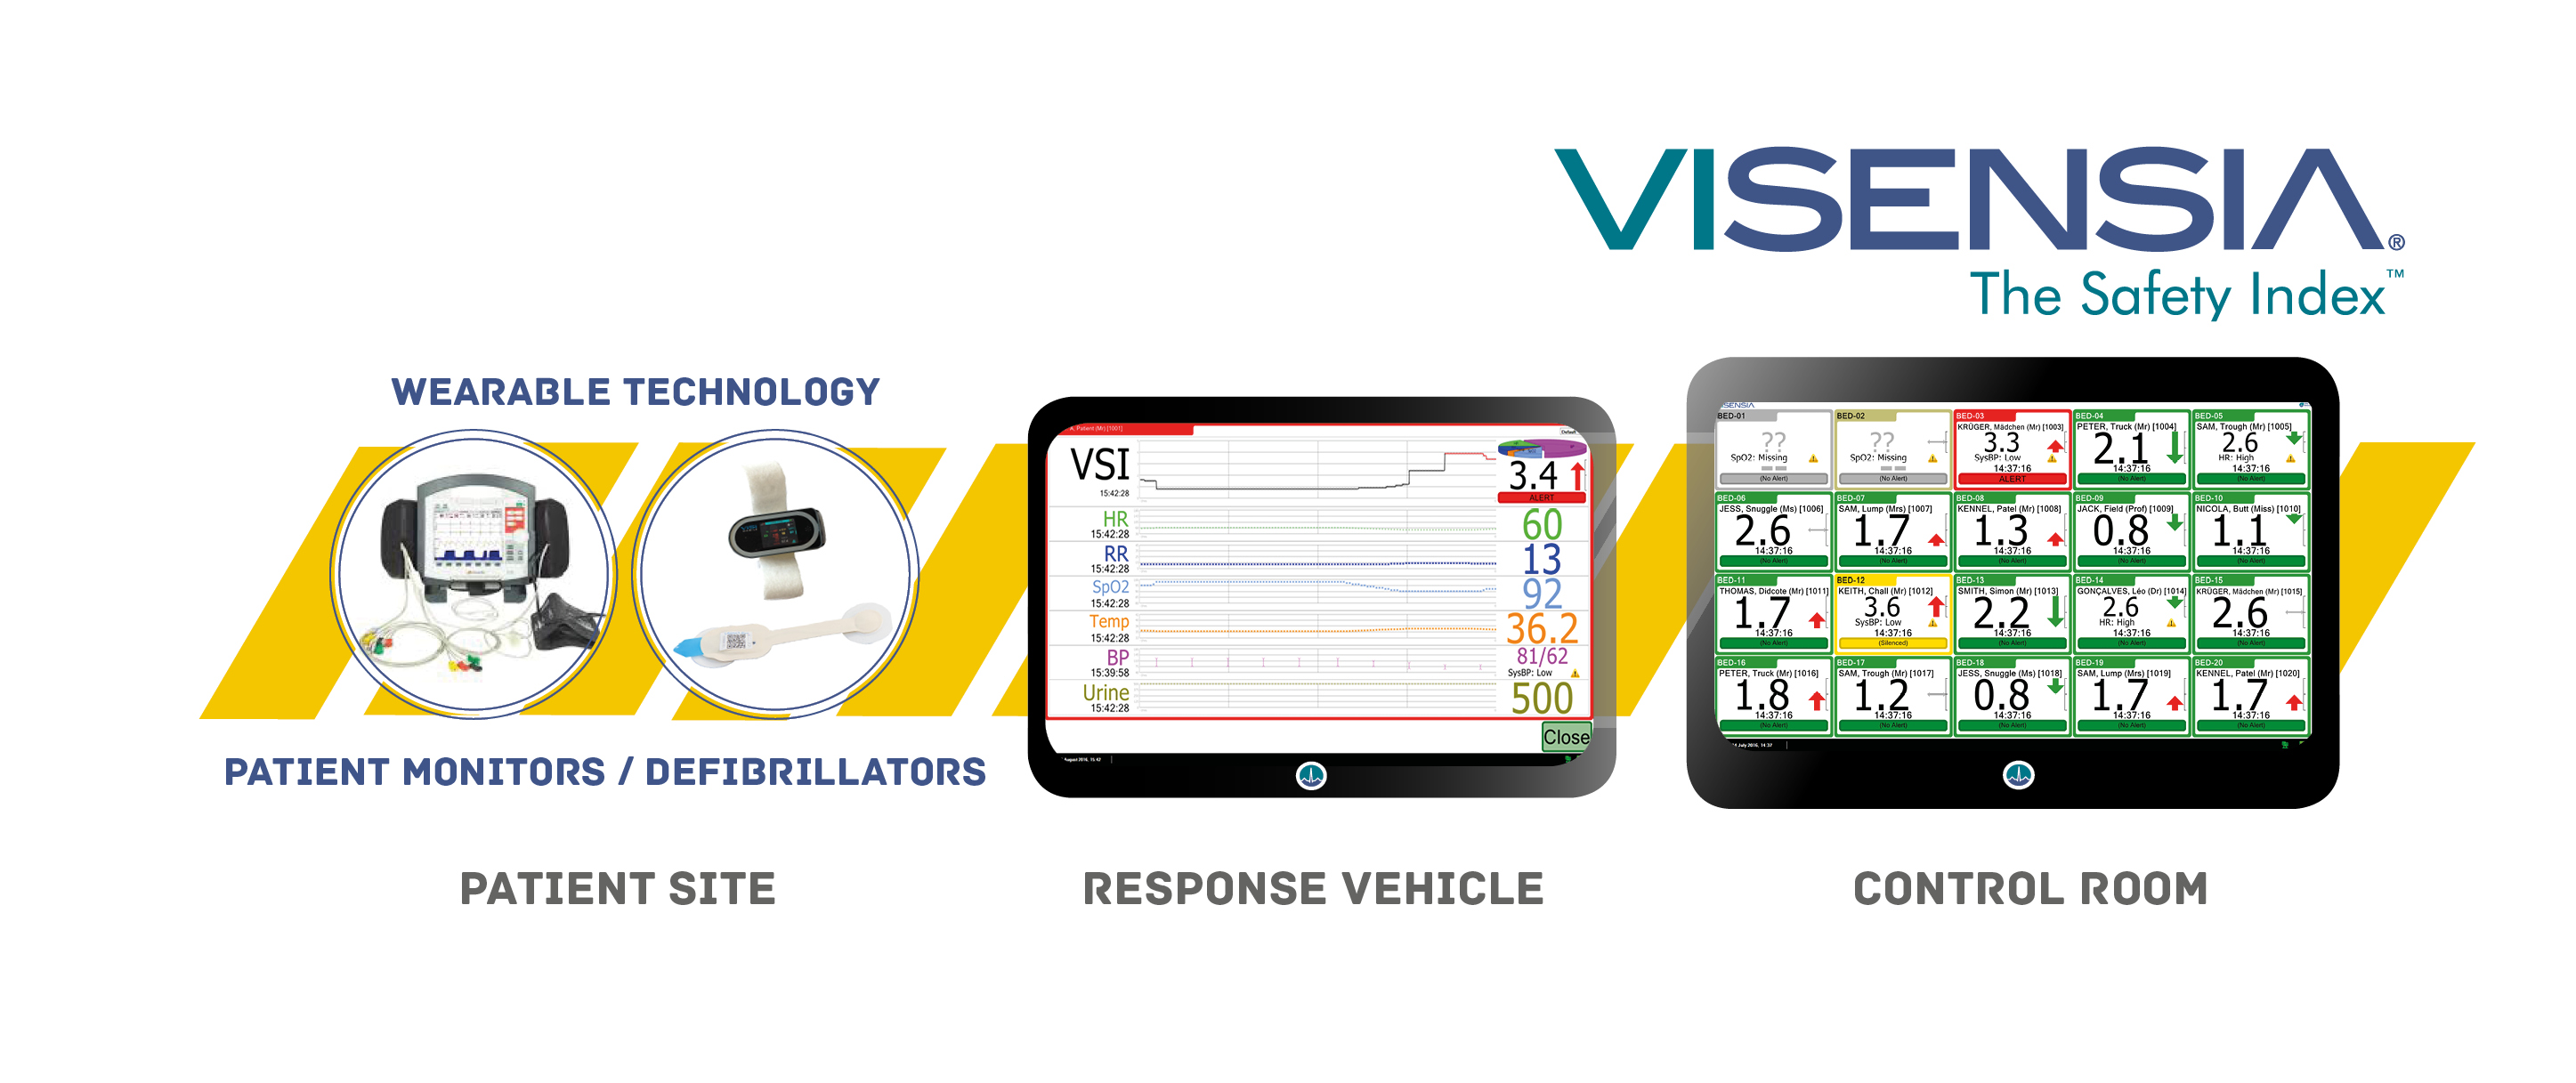 Visensia For Emergency Medical Services